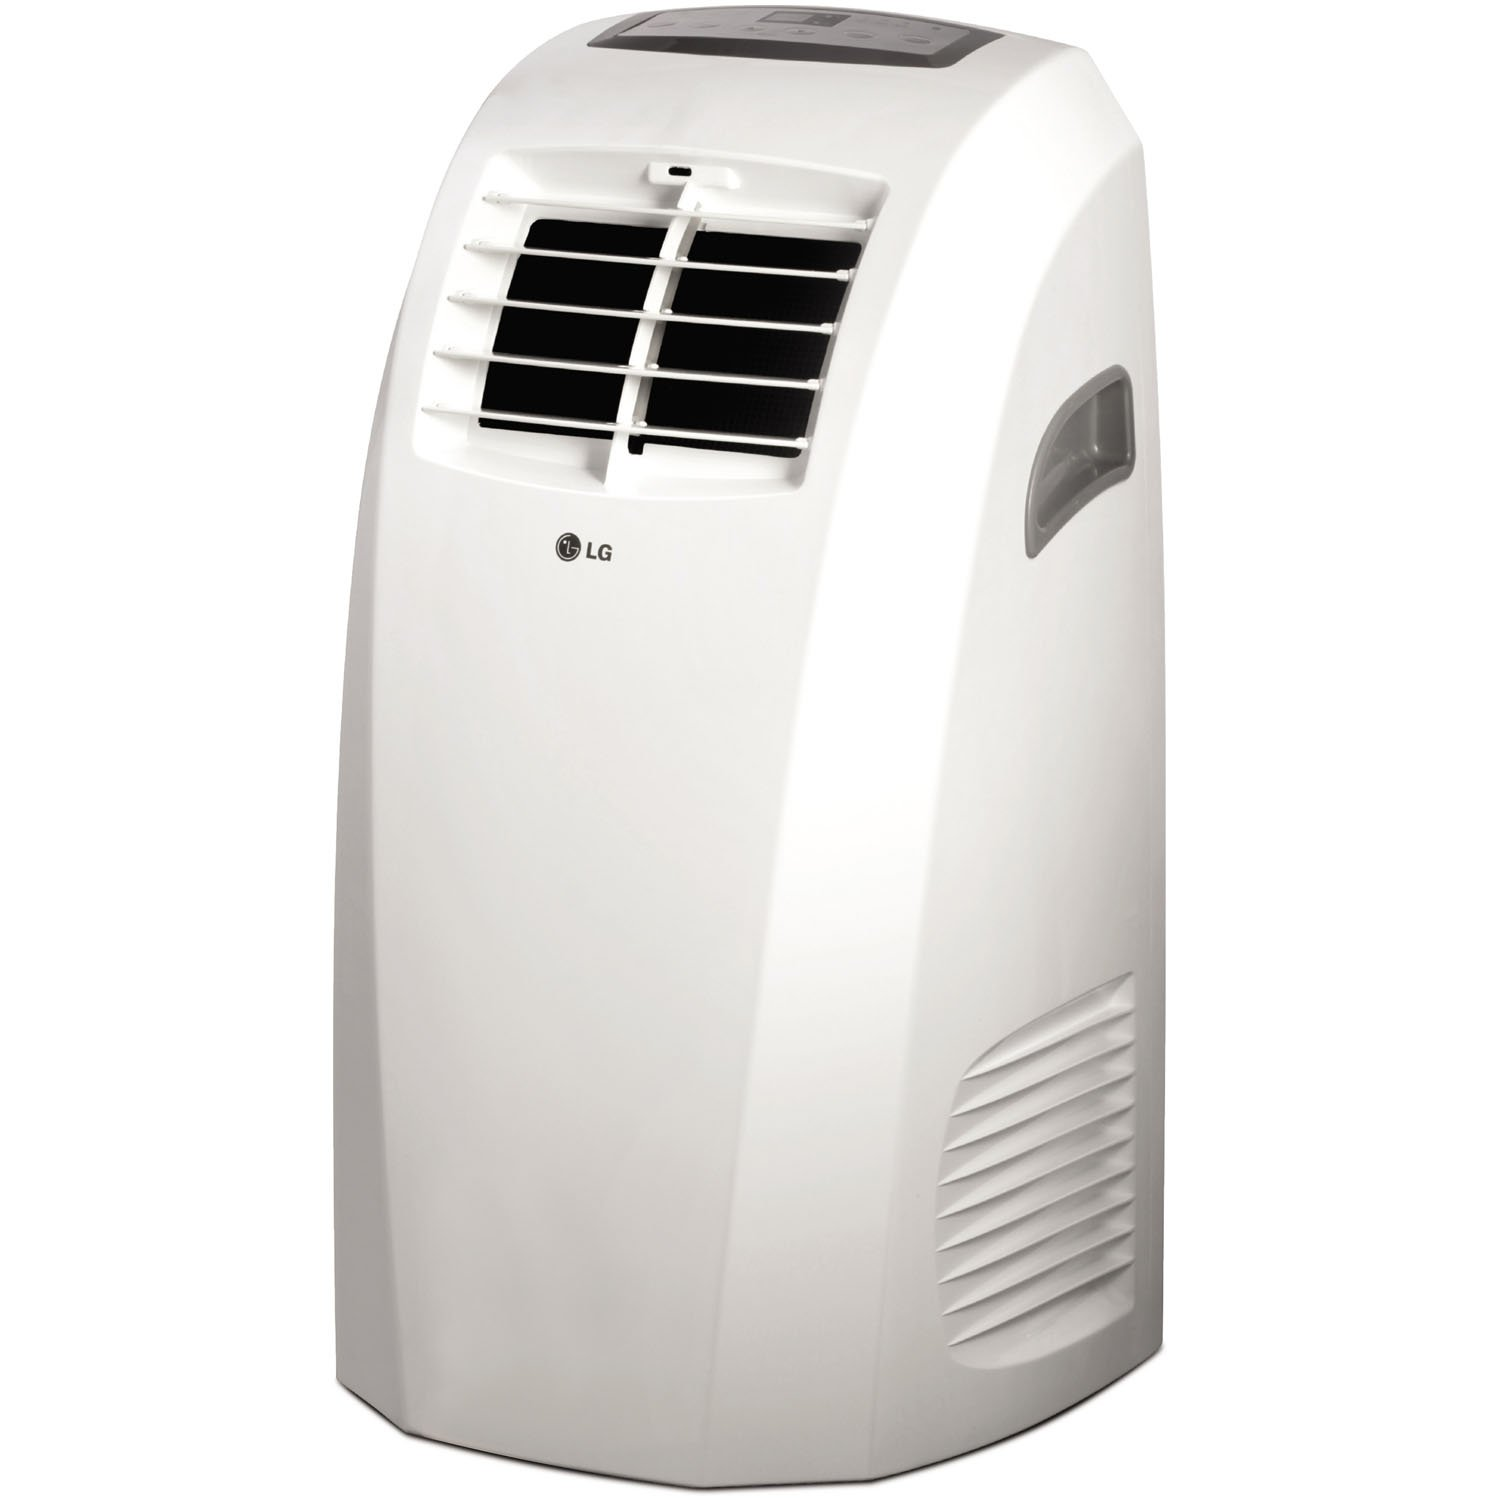 Top 10 Best Portable Air Conditioner Reviews in 2020 4